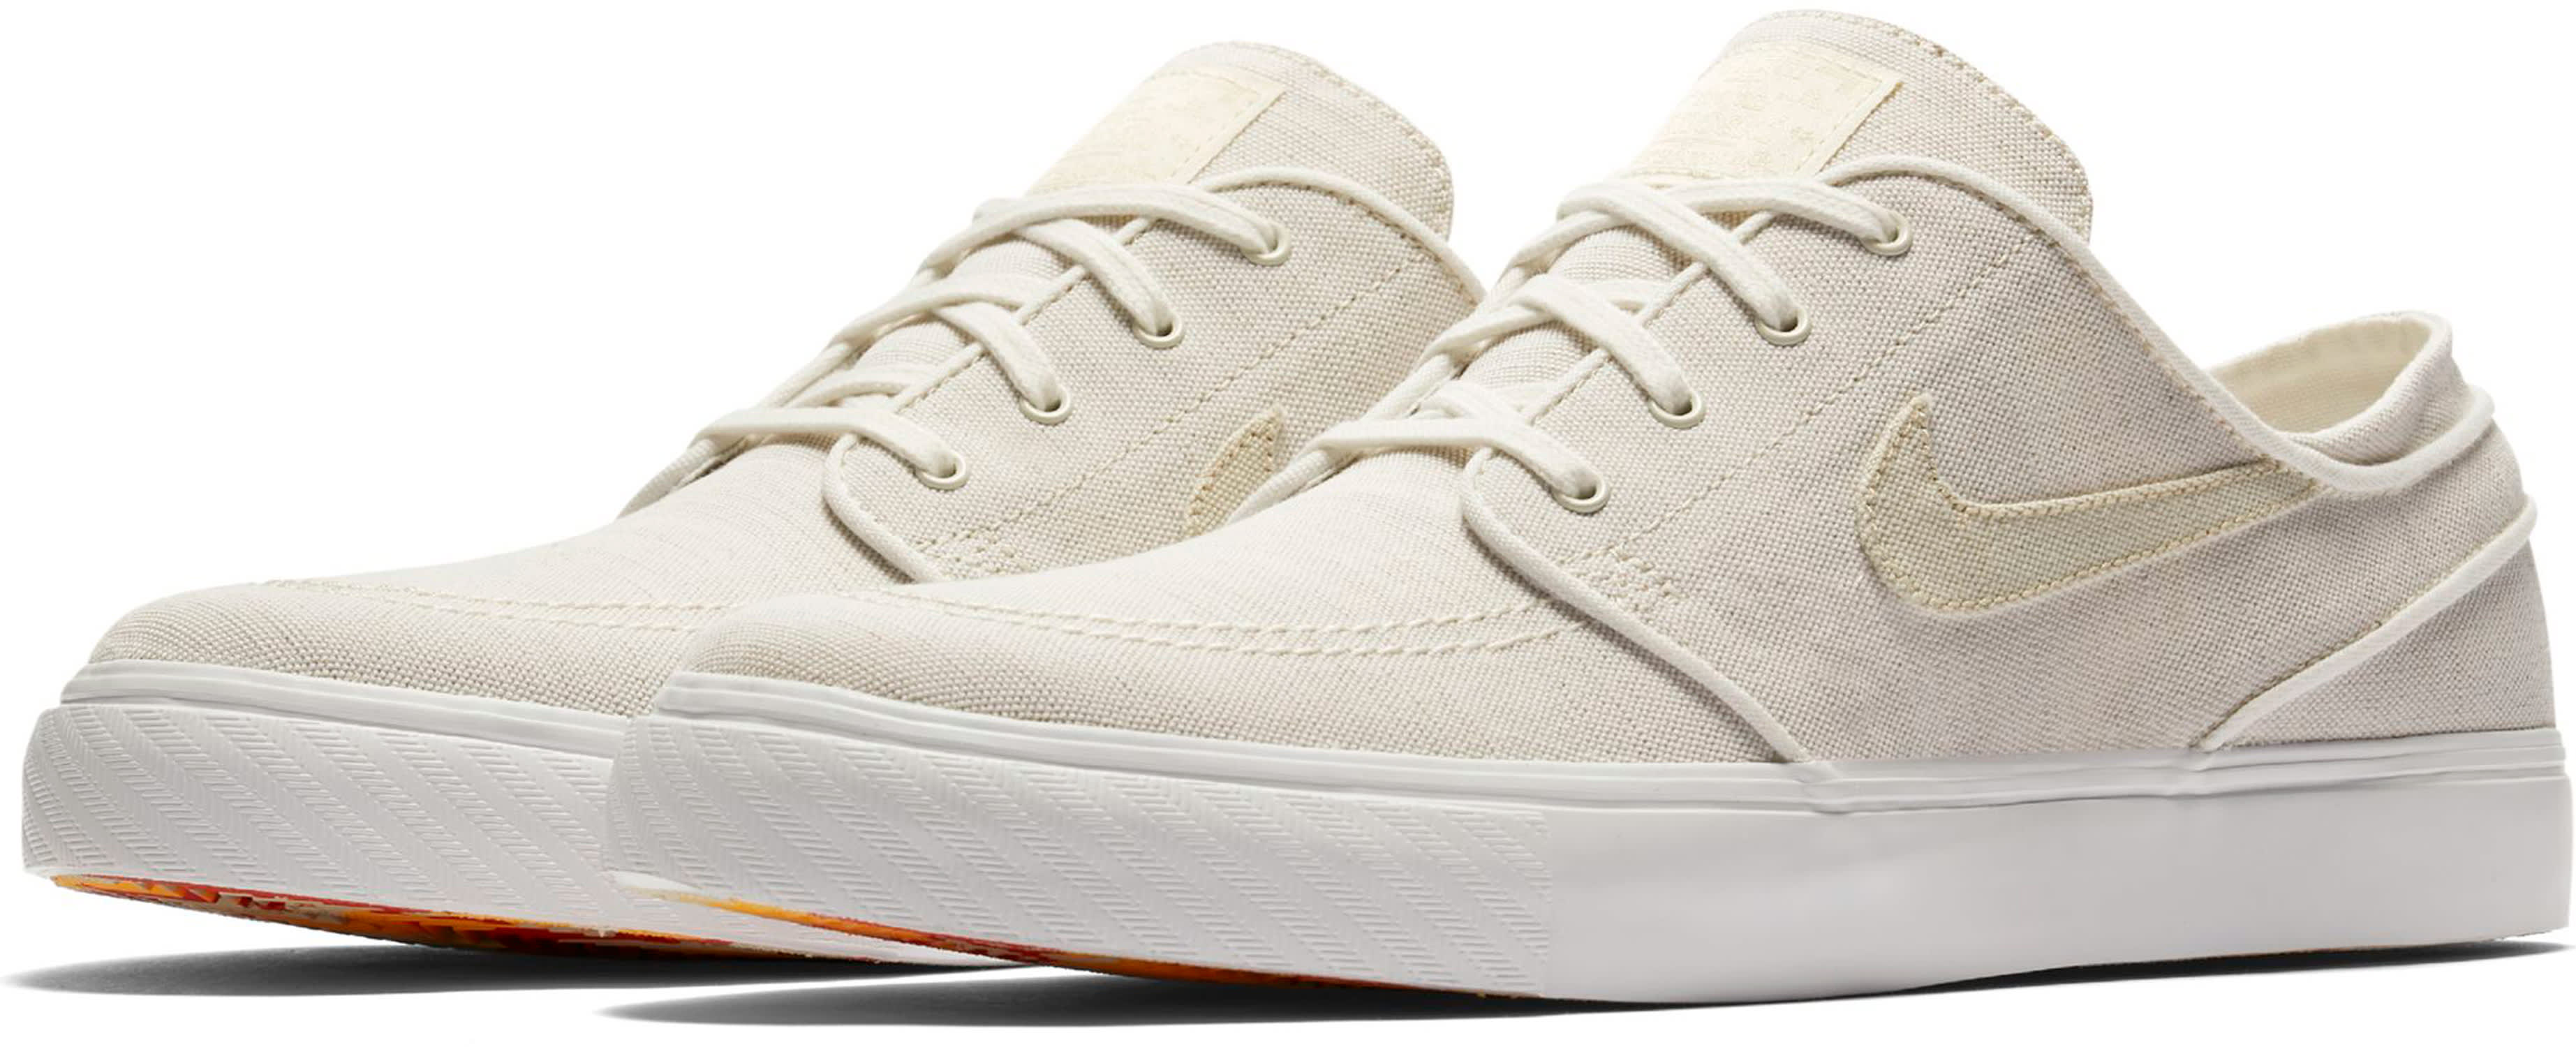 a53ce04df37e Nike SB Zoom Stefan Janoski Canvas Deconstructed Skate Shoes - thumbnail 3